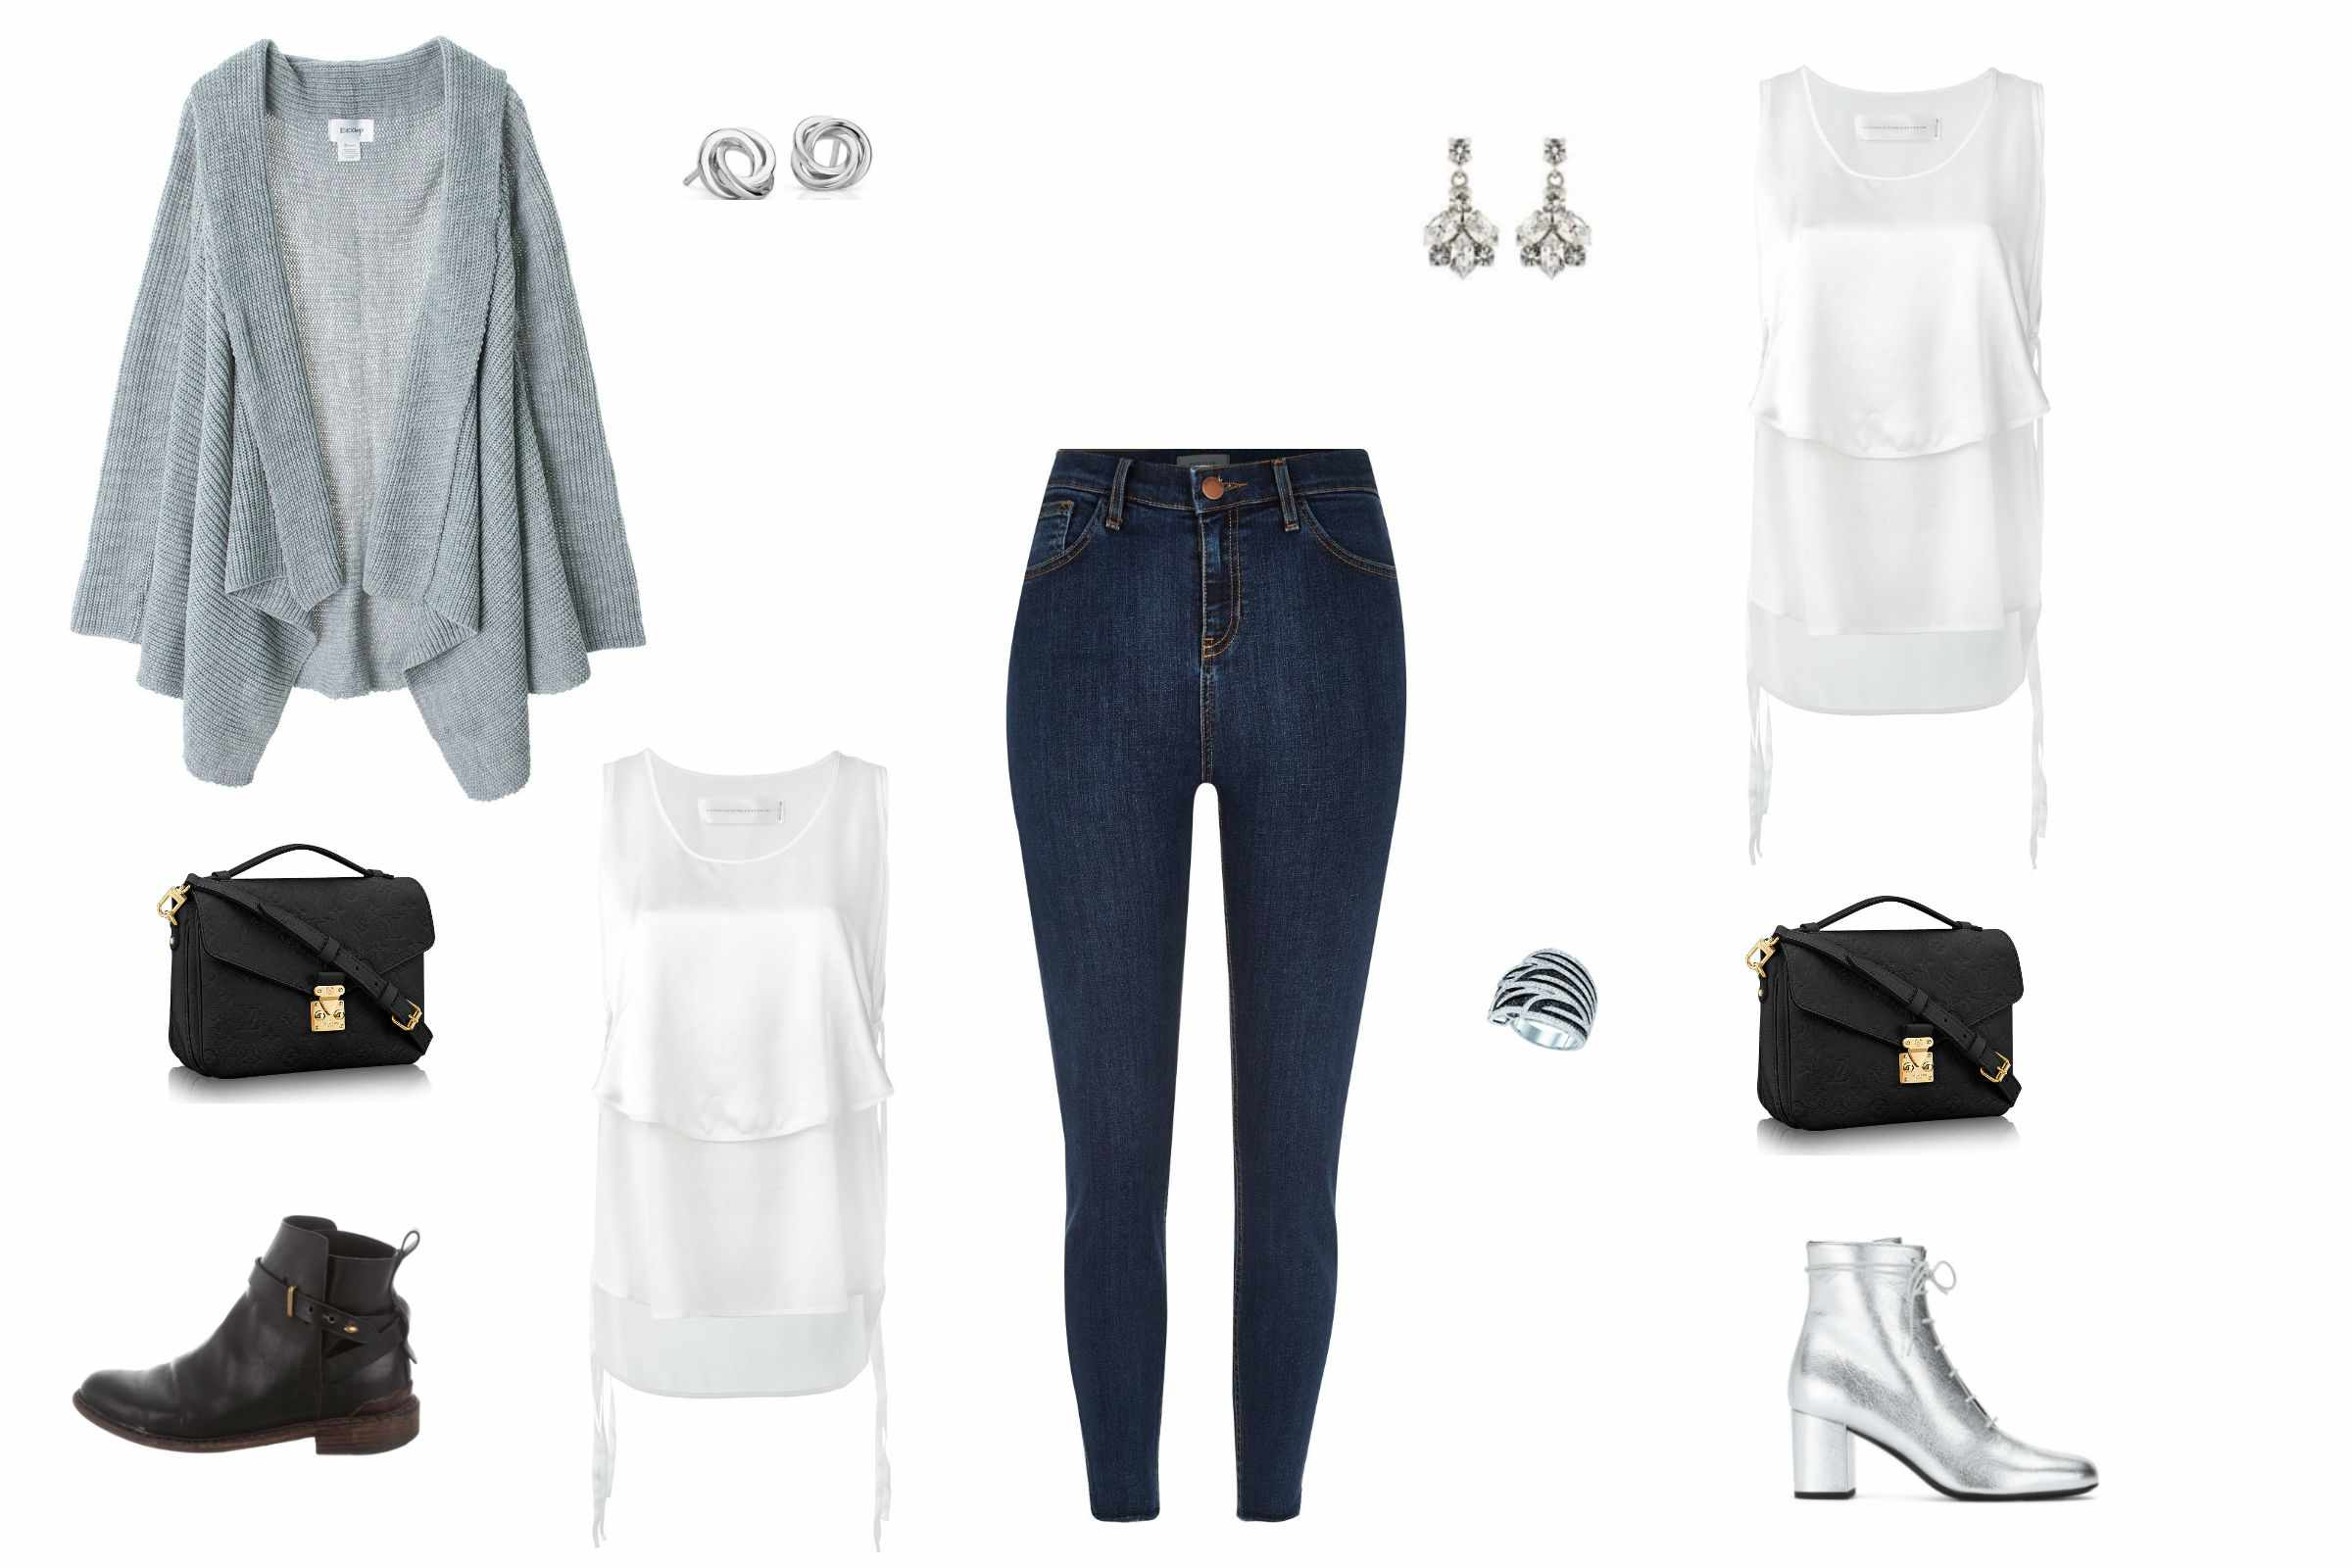 12d25e7643 10 Ways to Dress Up Jeans for a Night Out